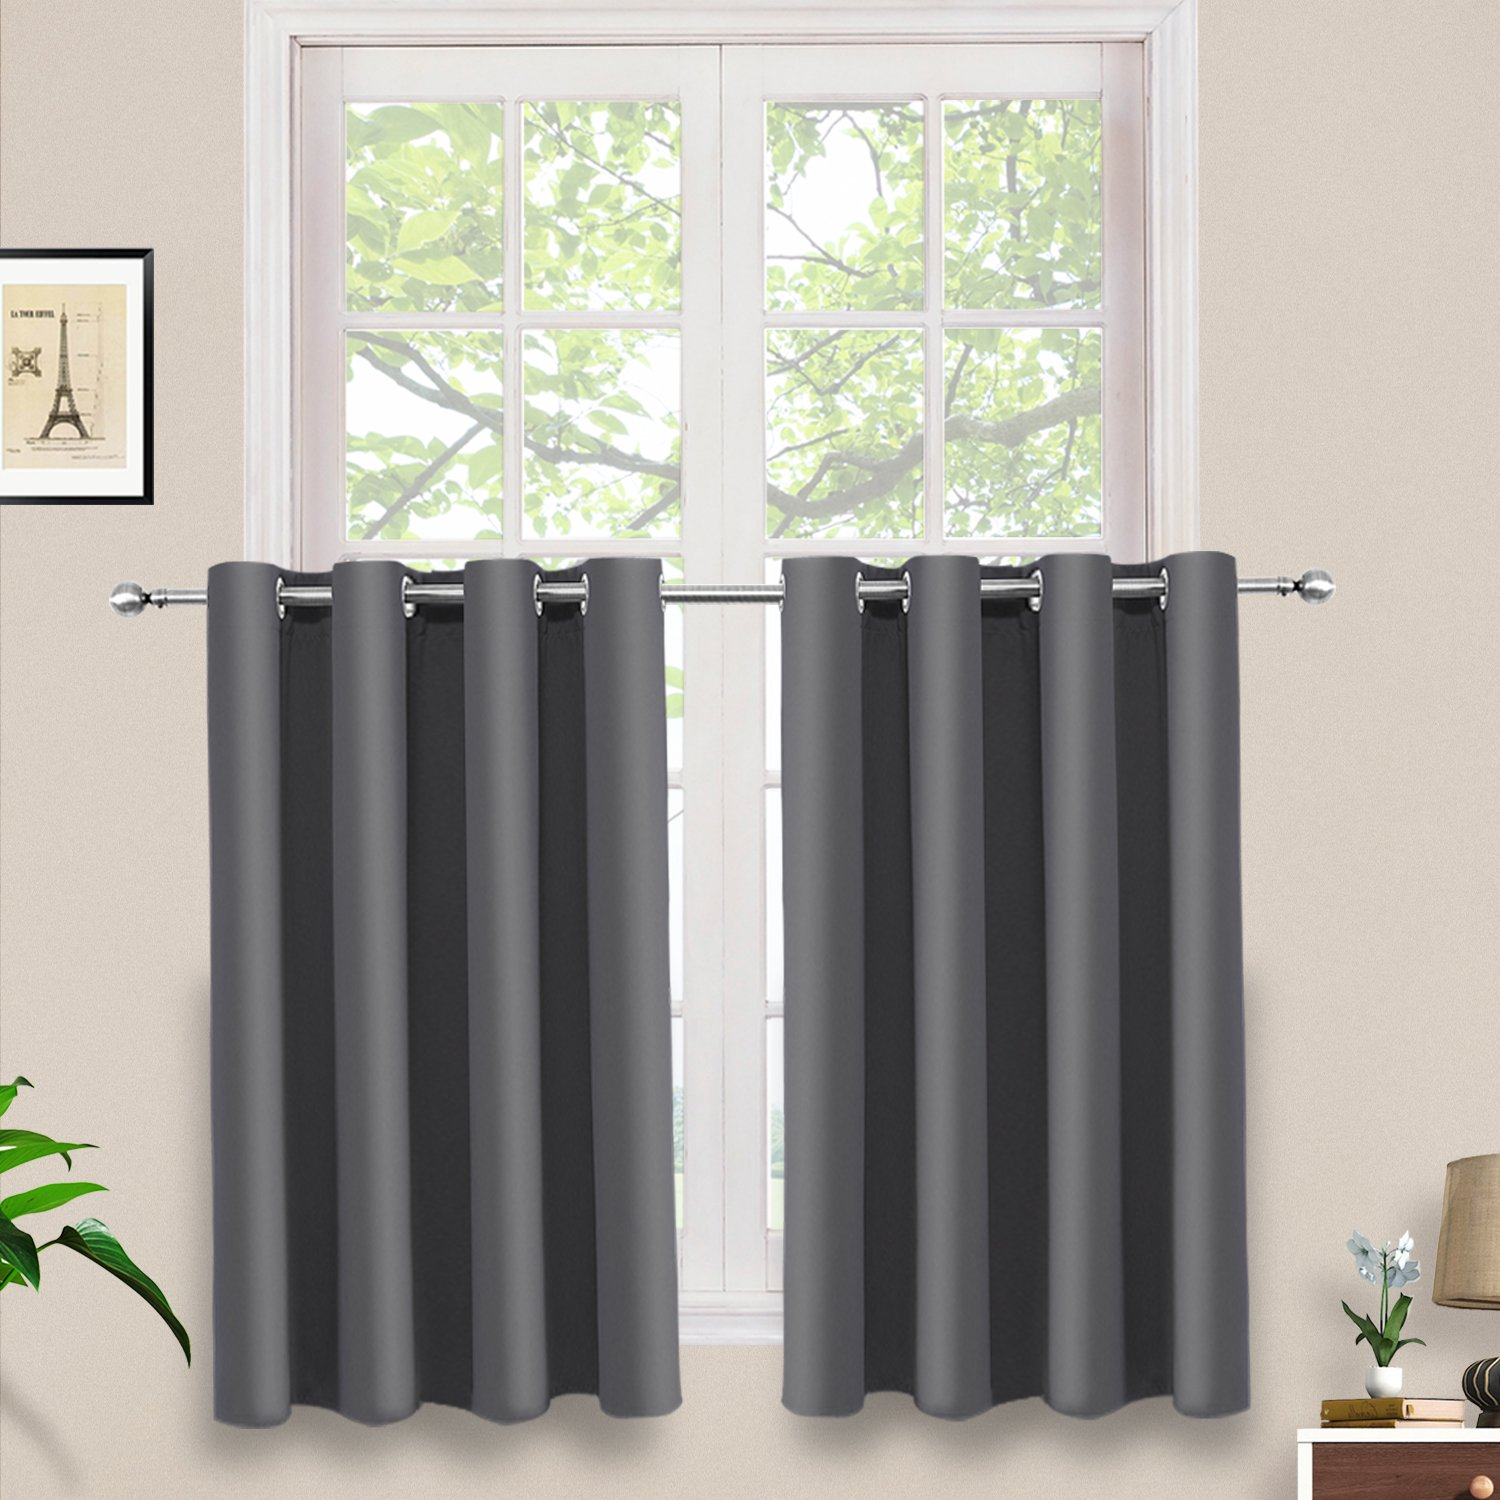 PRAVIVE Gray Blackout Curtain Tier - Thermal Insulated Short Grommet Blind Panel for Small/Half Window/Bedroom Privacy, 52 X 36 Inches, 1 Piece